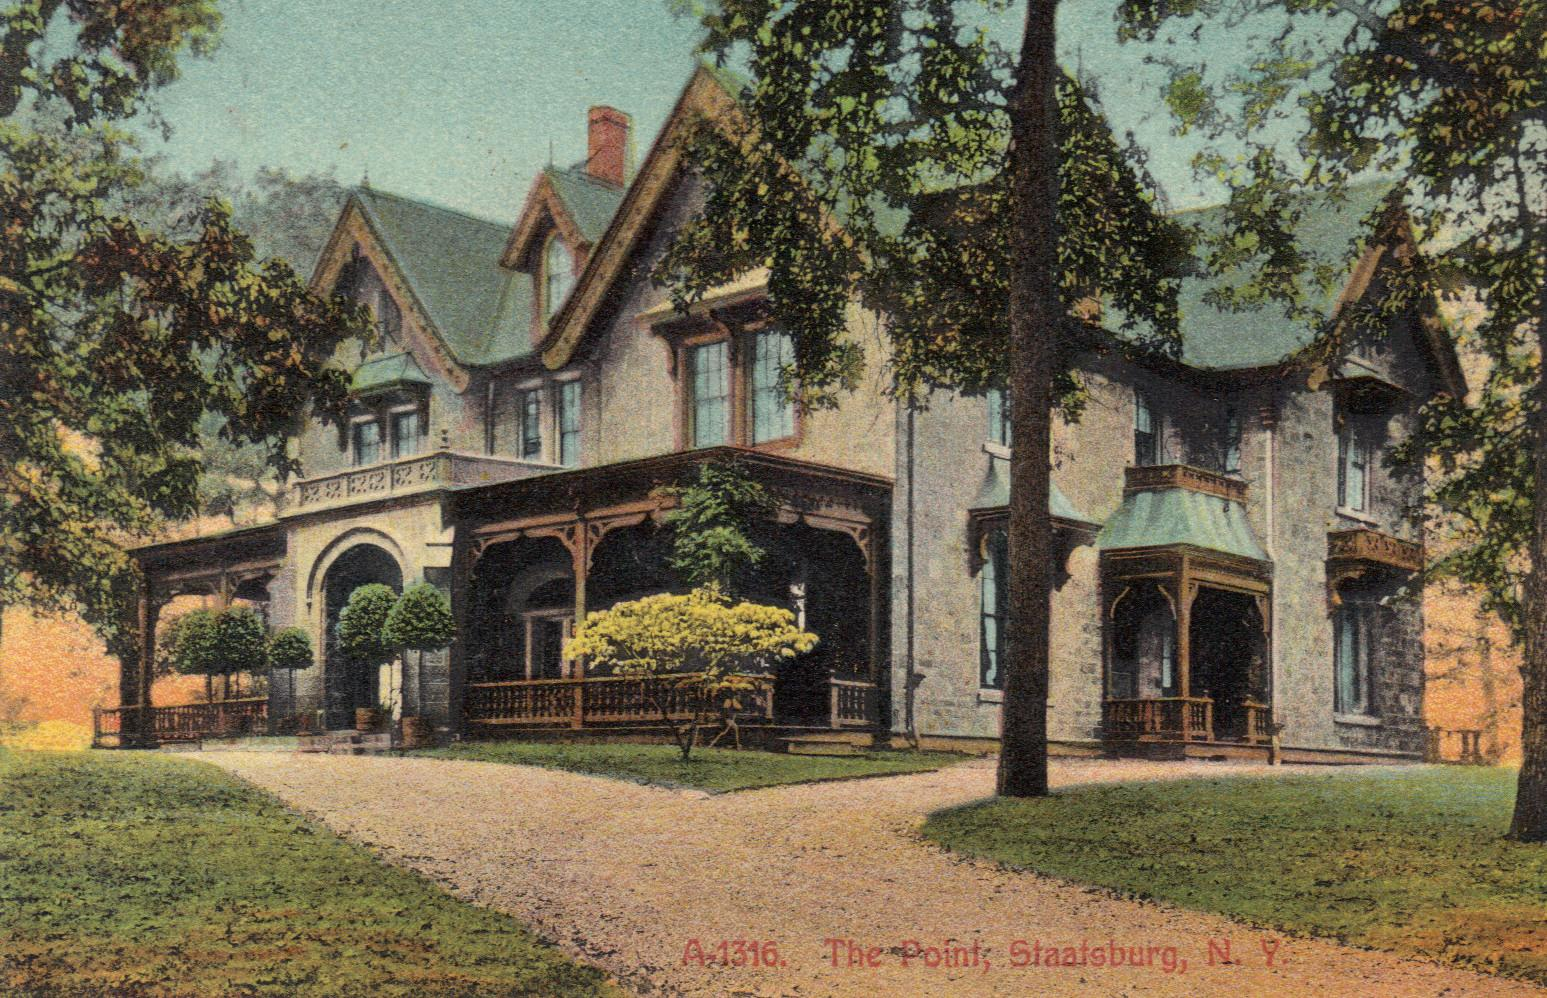 Hoyt House – The Point, Staatsburg, N.Y.